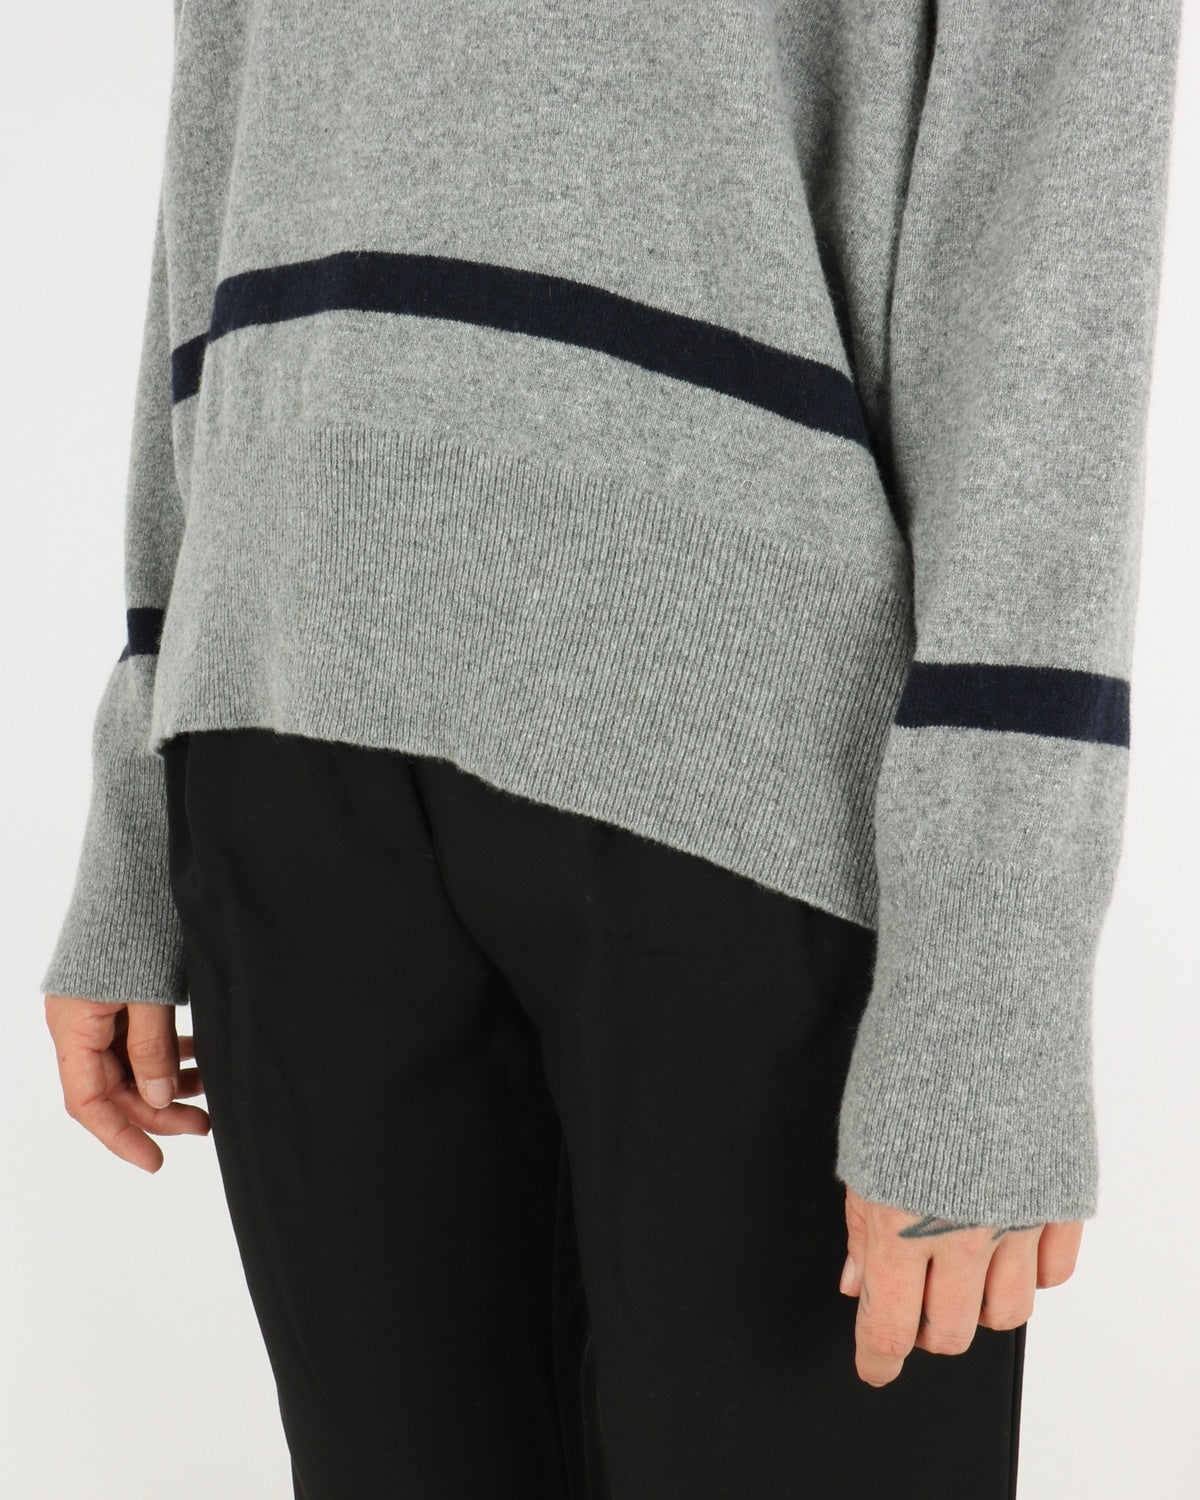 libertine libertine_husky knit_grey melange dark navy_4_4